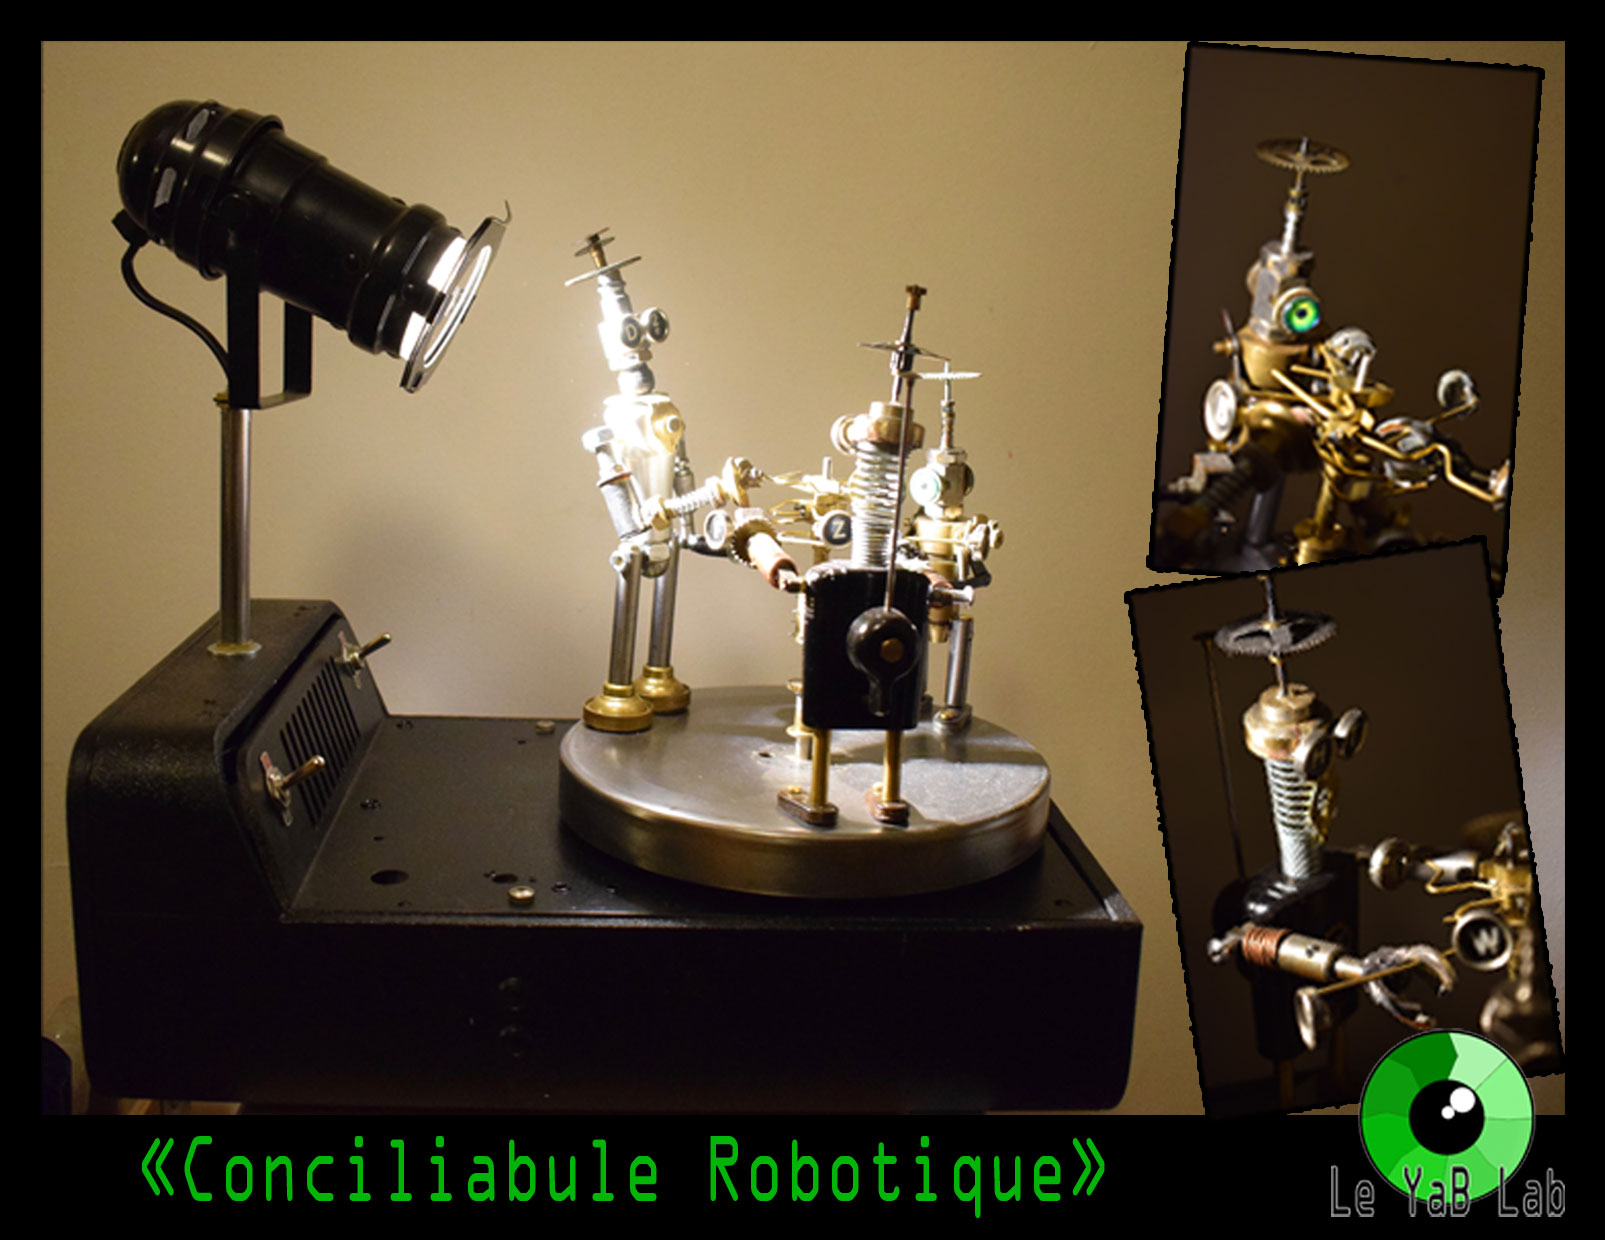 Conciliabule-Robotique